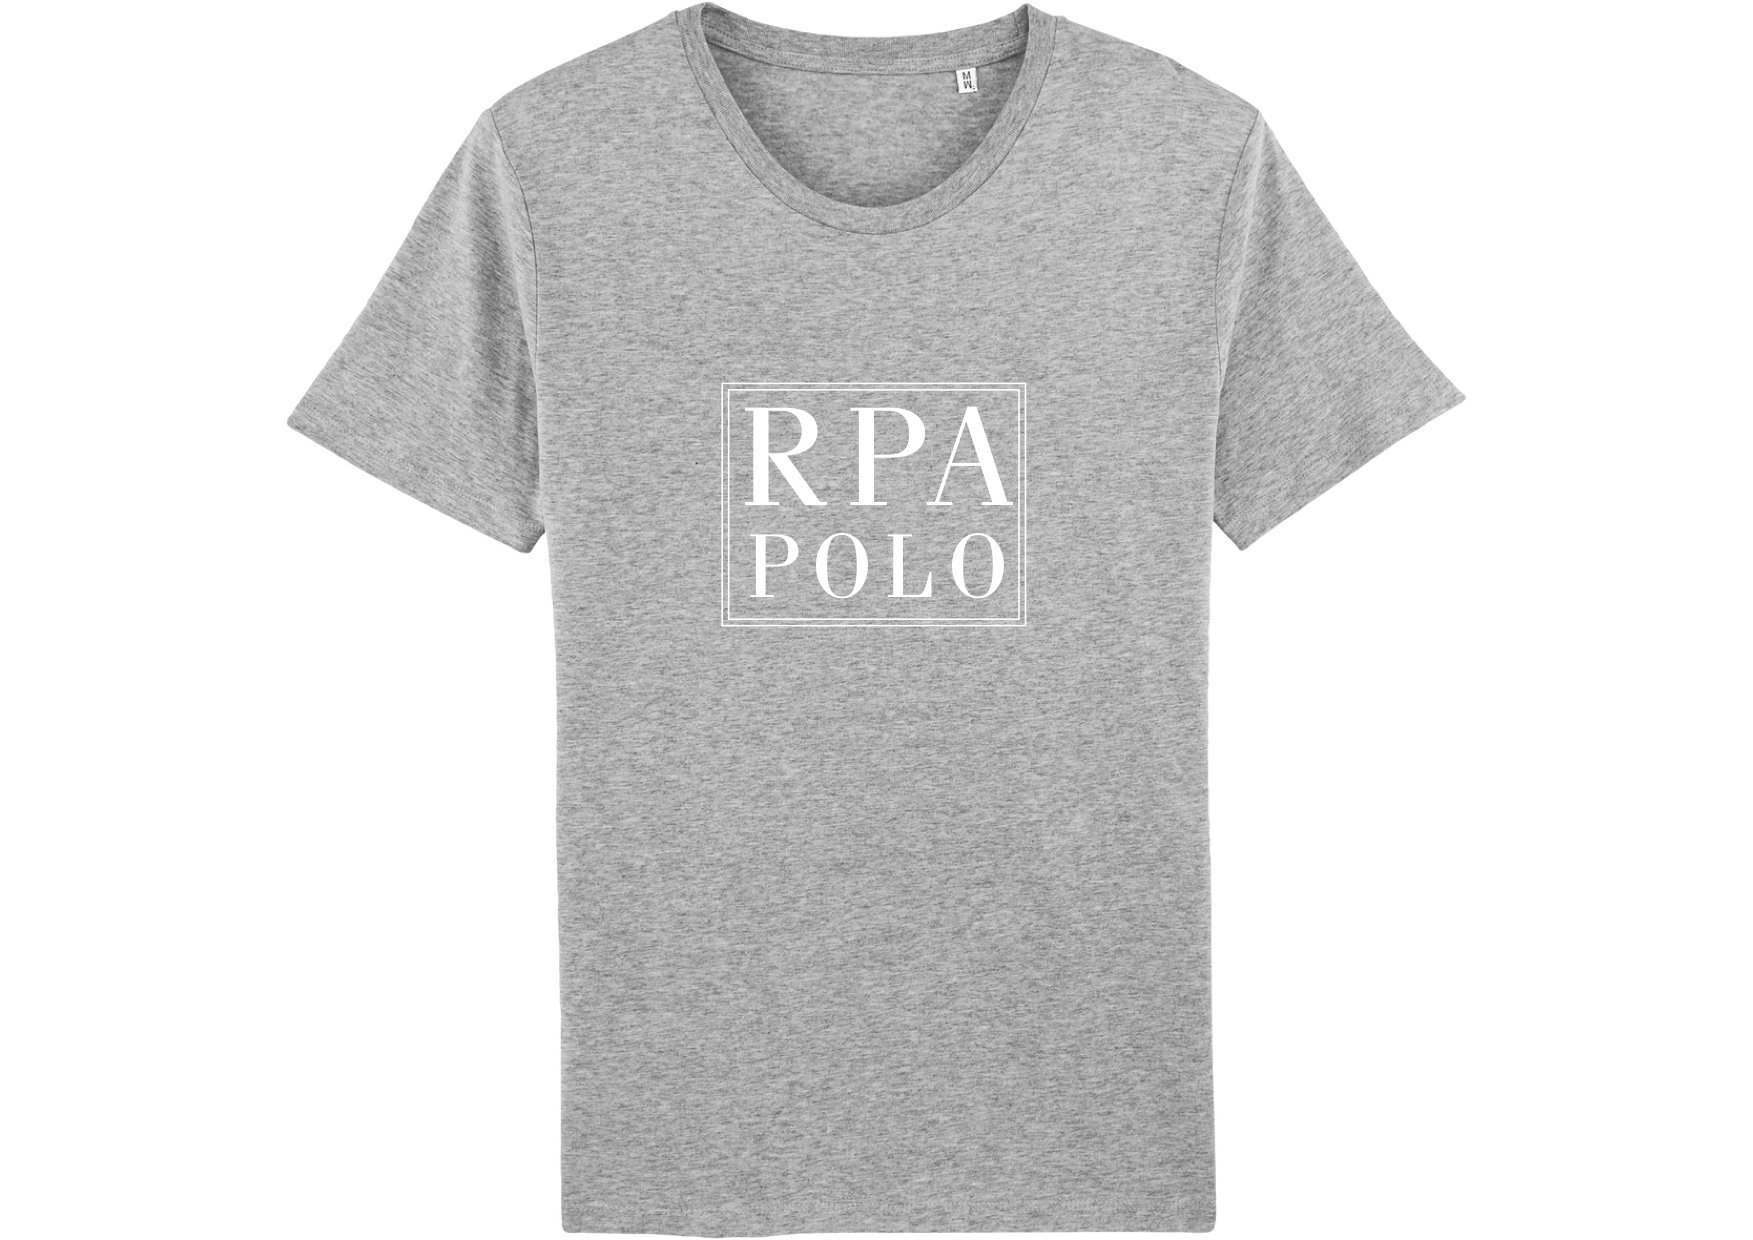 "T-Shirt ""RPA POLO"" in heather grey 00000"